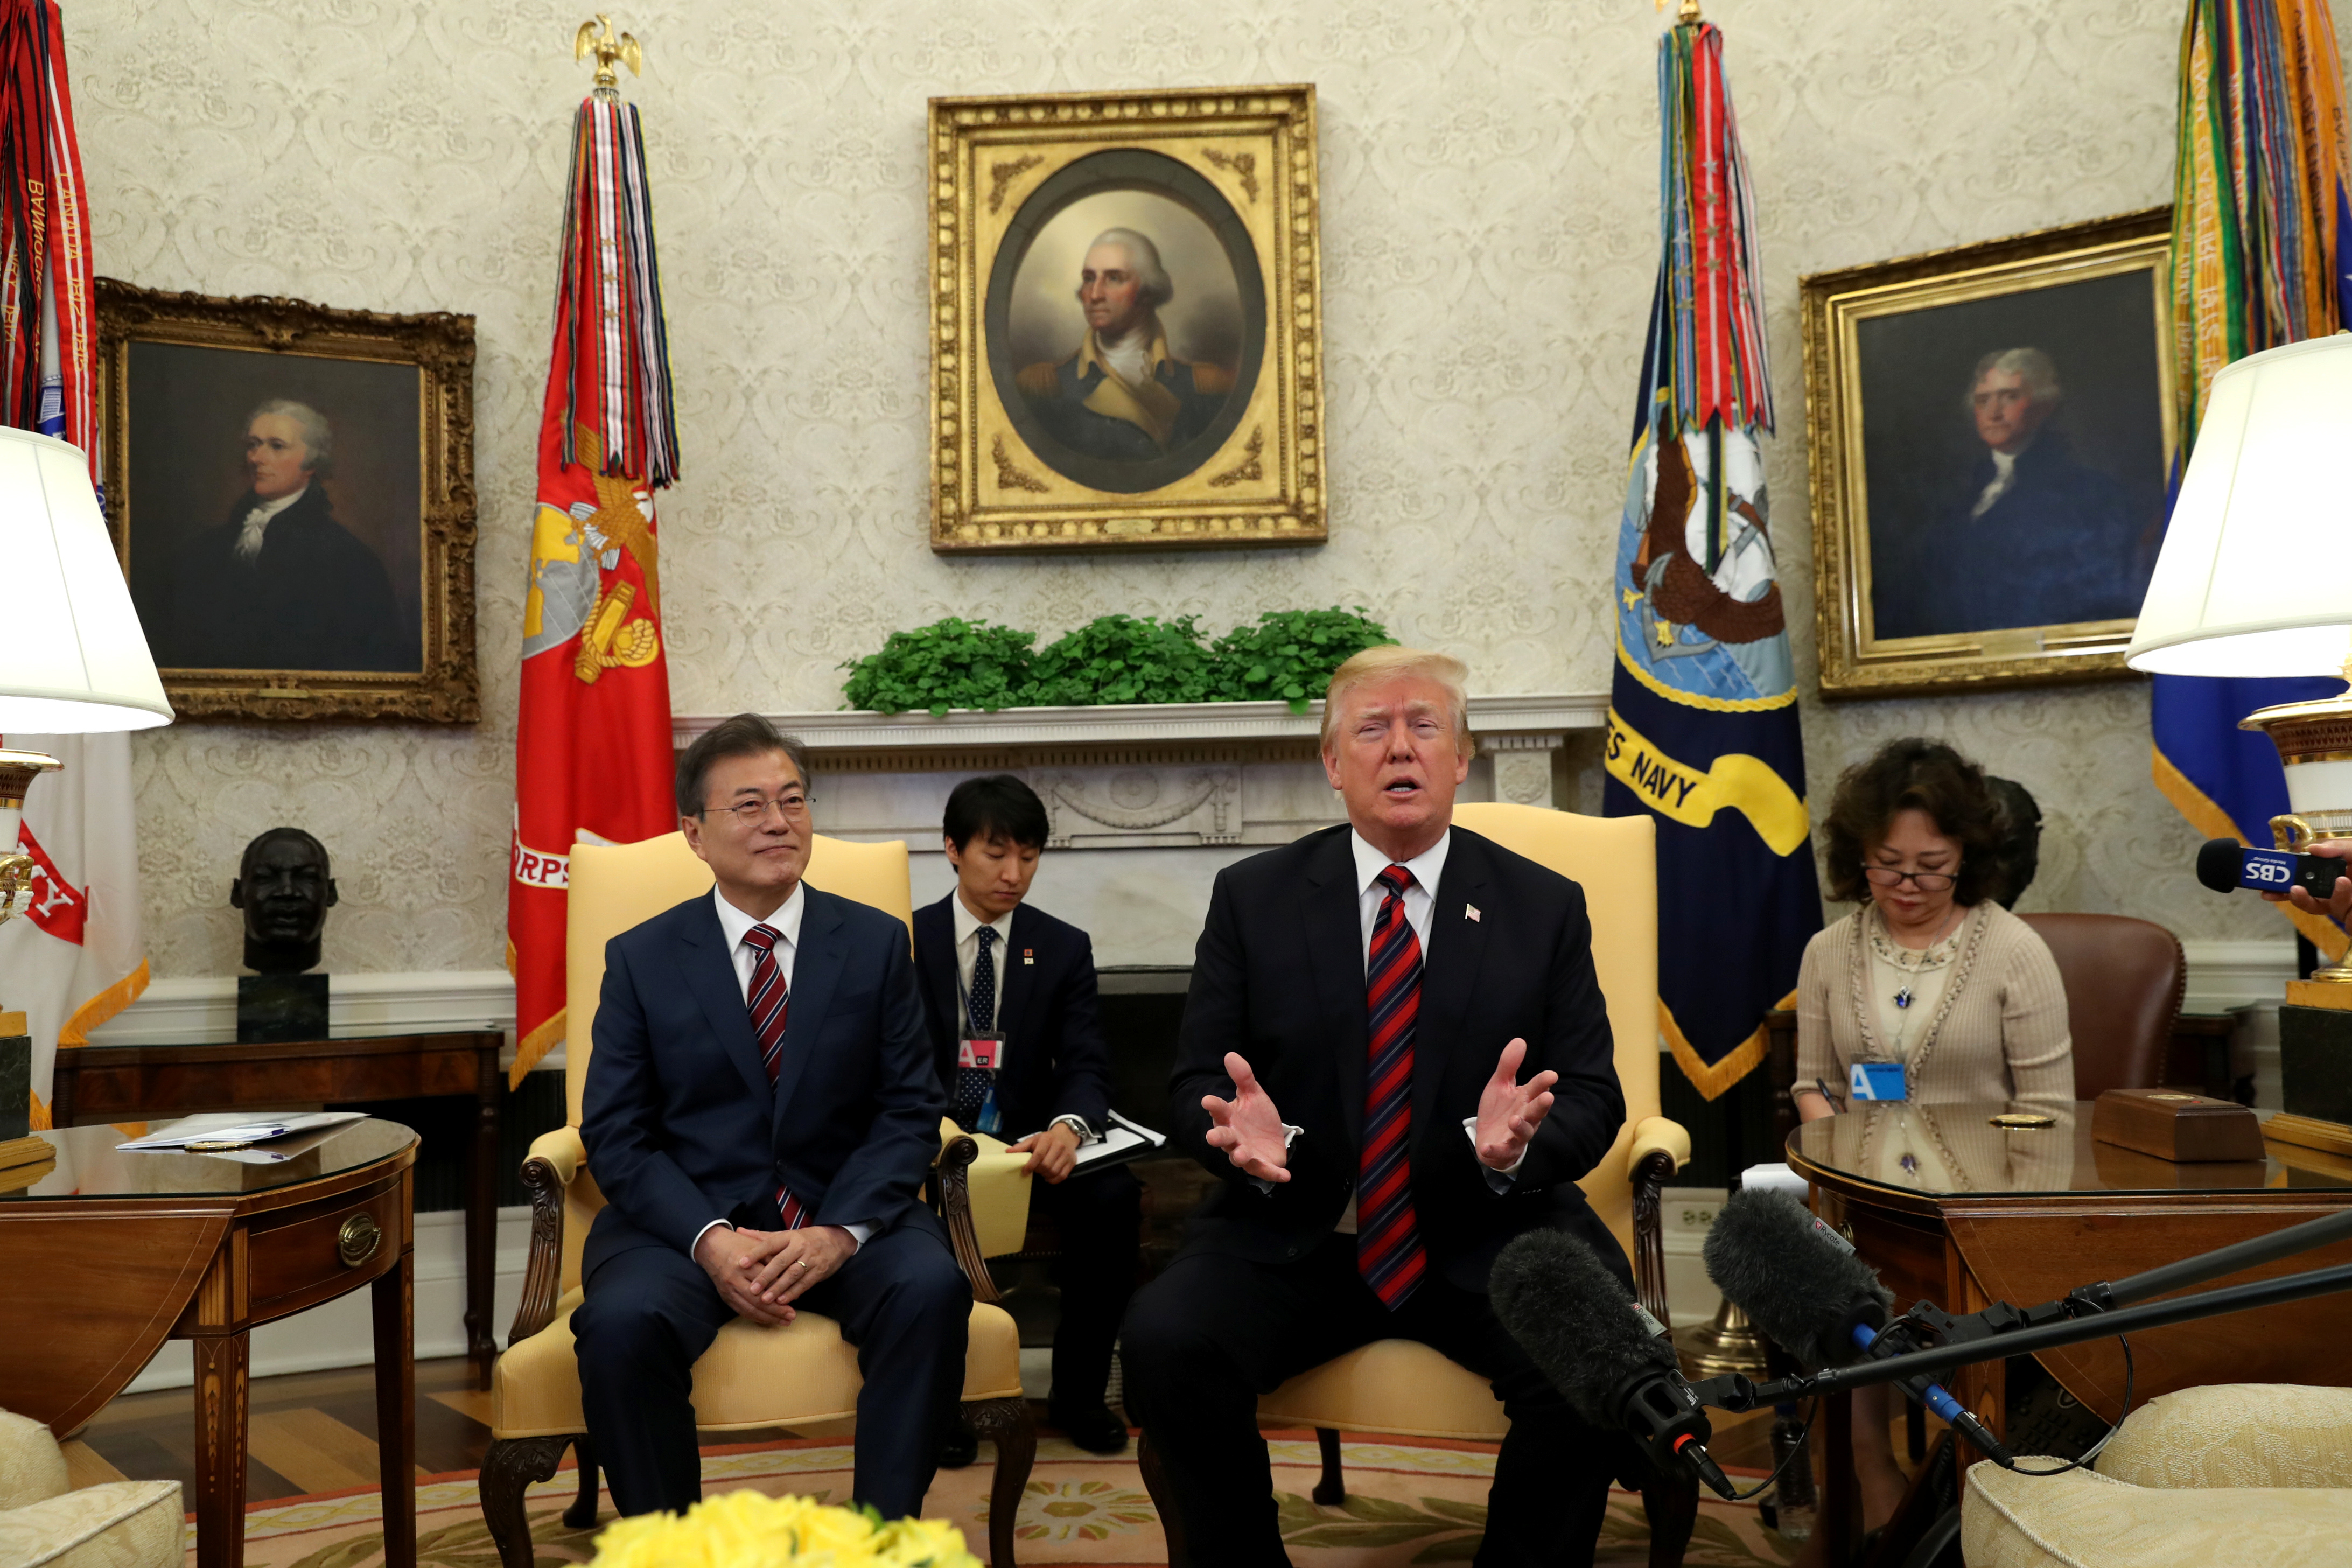 US President Donald Trump sits beside South Korea's President Moon Jae-In in the Oval Office of the White House in Washington, DC, May 22, 2018.